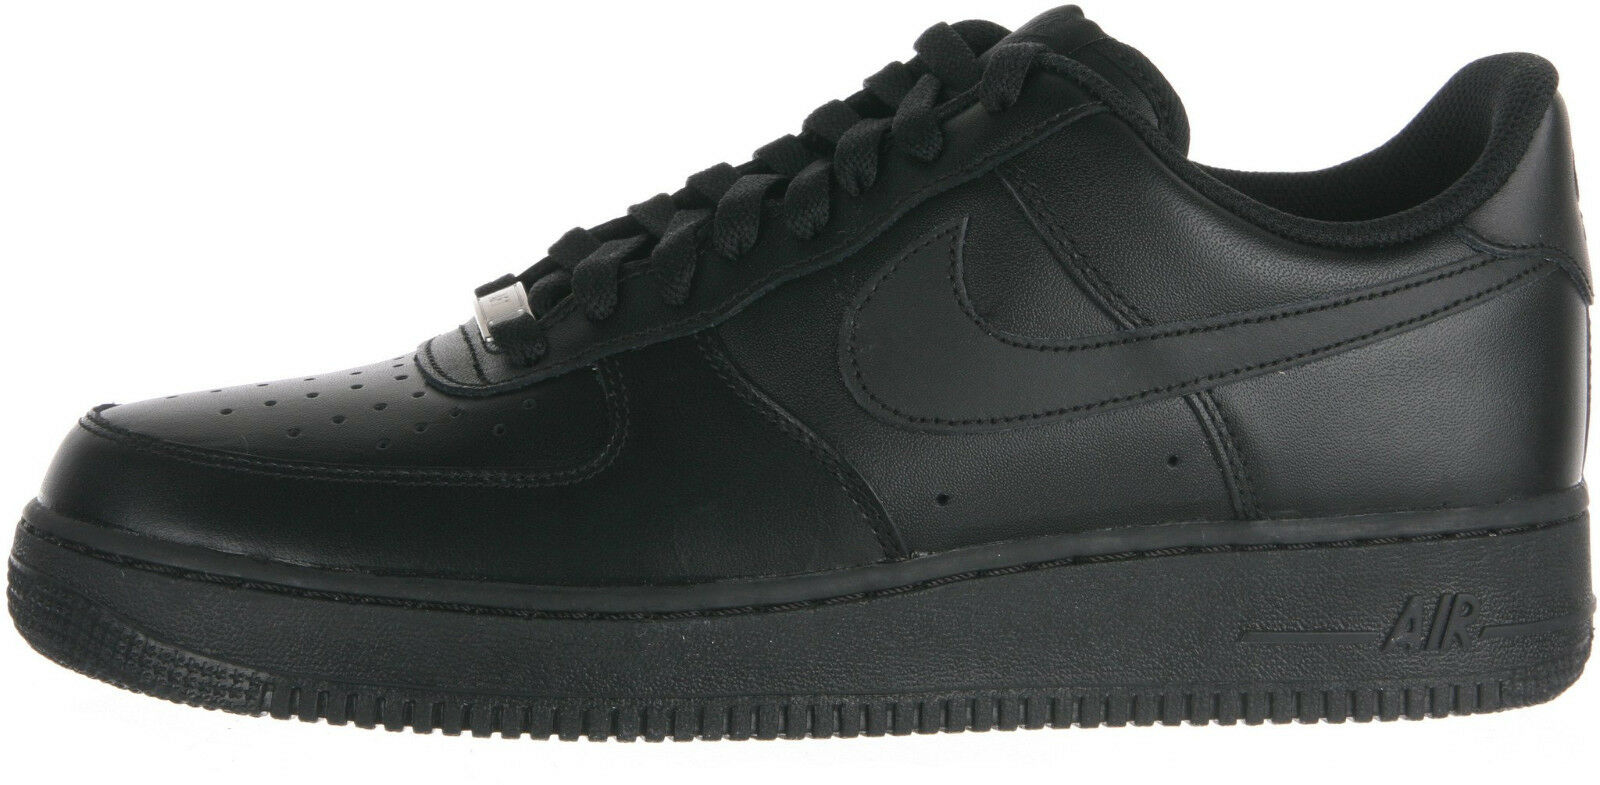 Nike Air Force 1 Low All Black Triple Black Style  315122-001